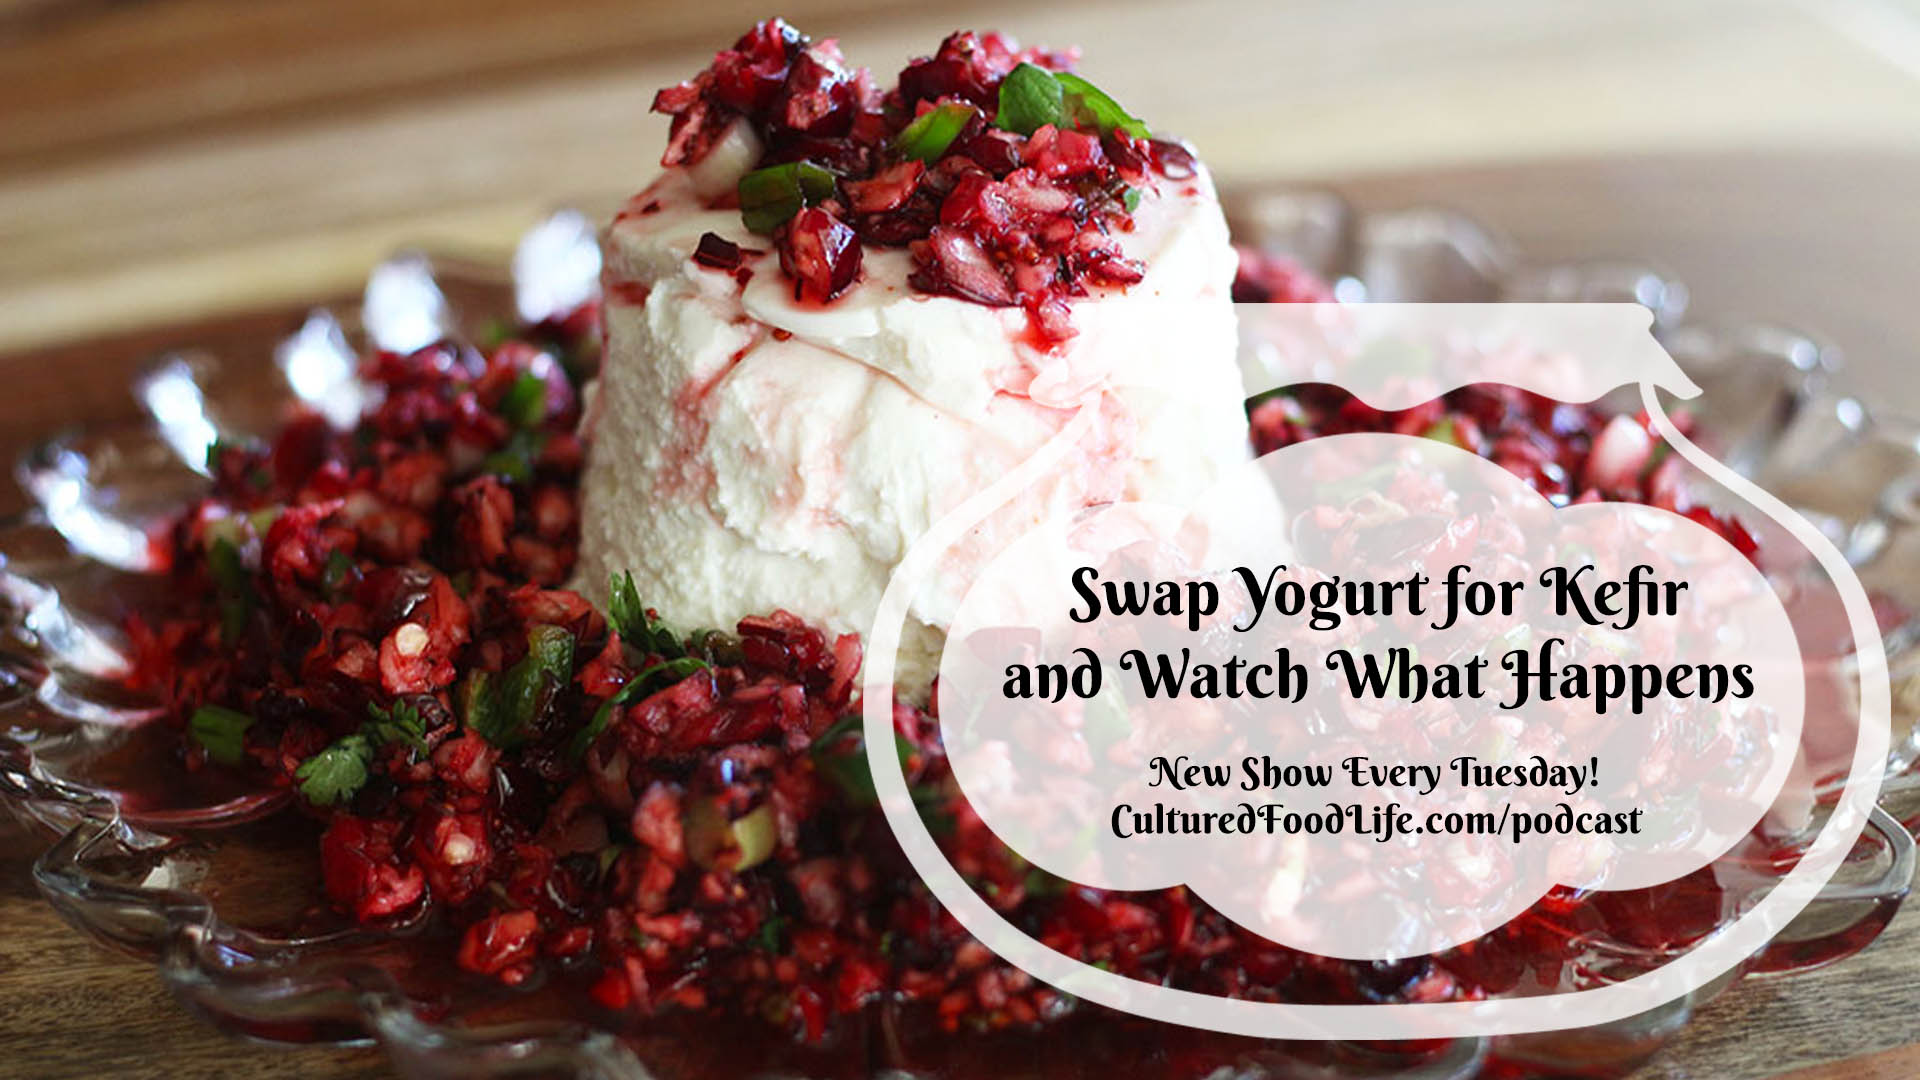 Swap Yogurt for Kefir and Watch What Happens